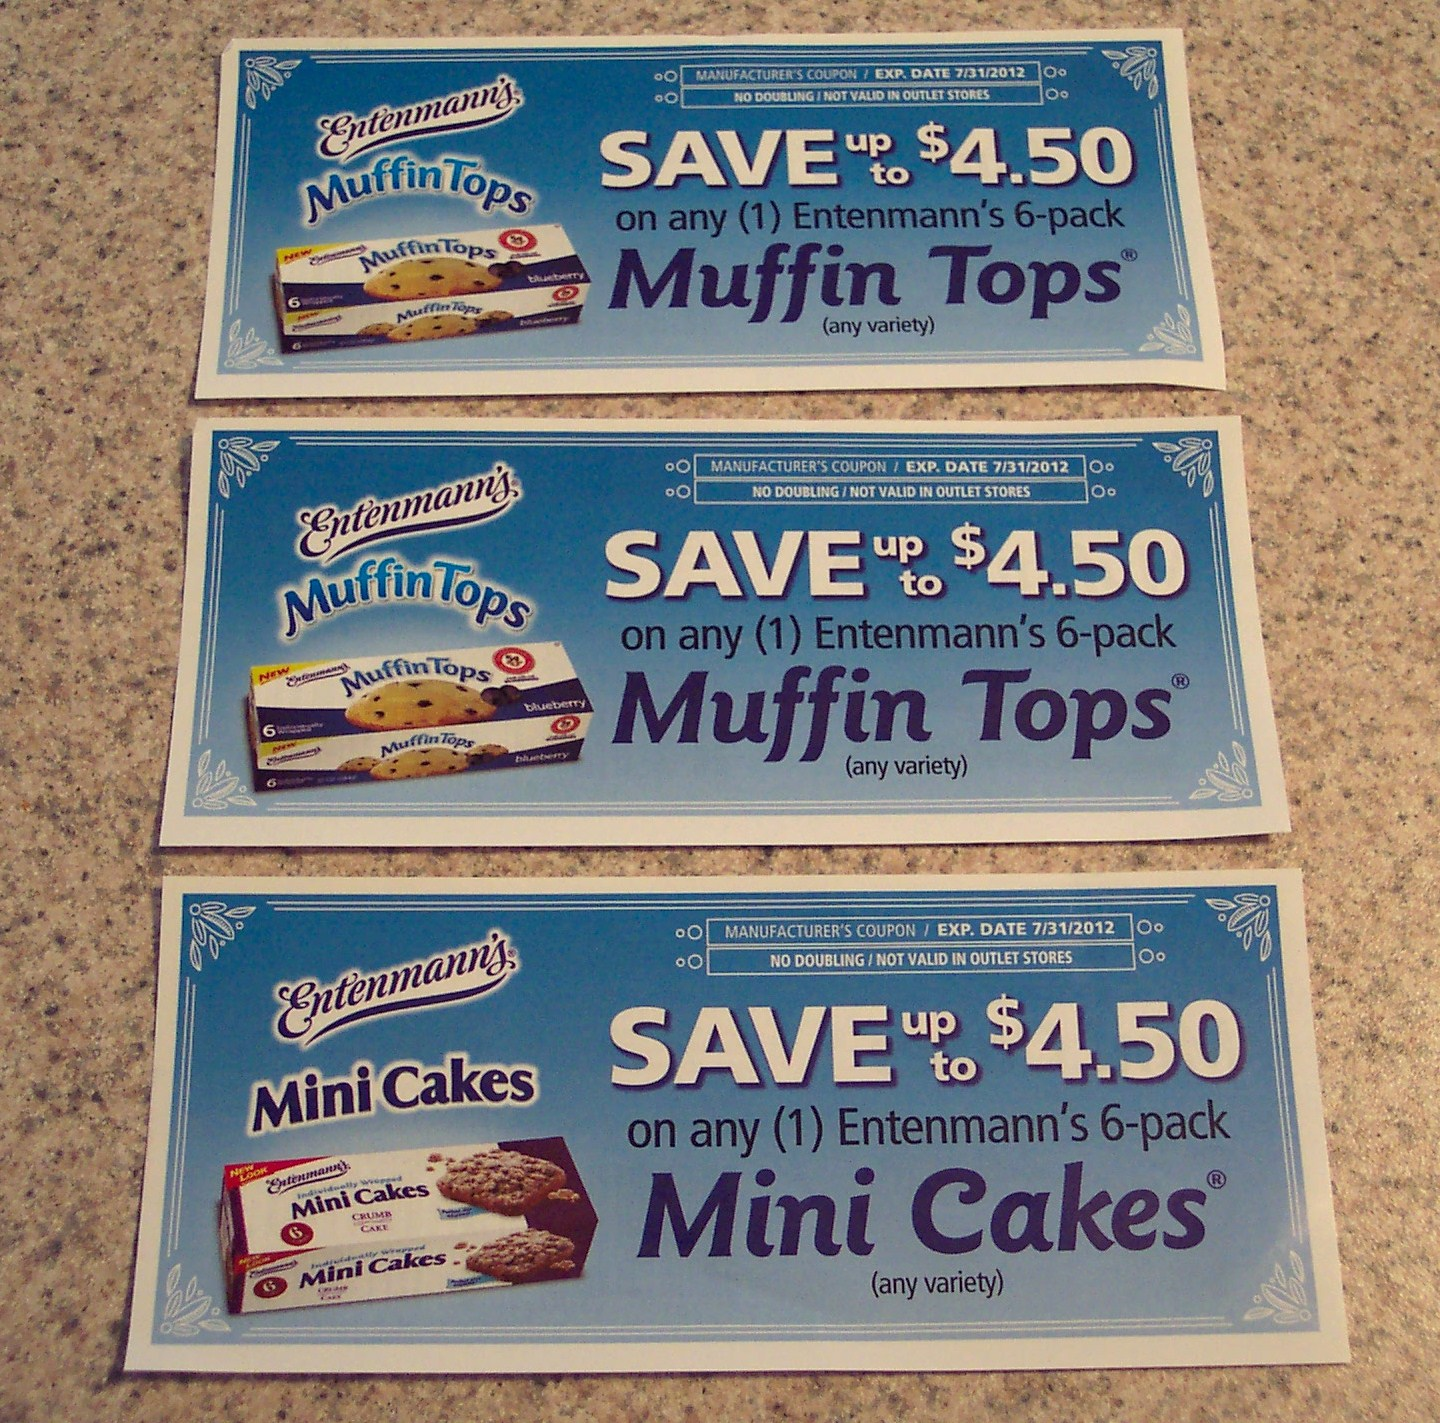 Entenmann's coupons